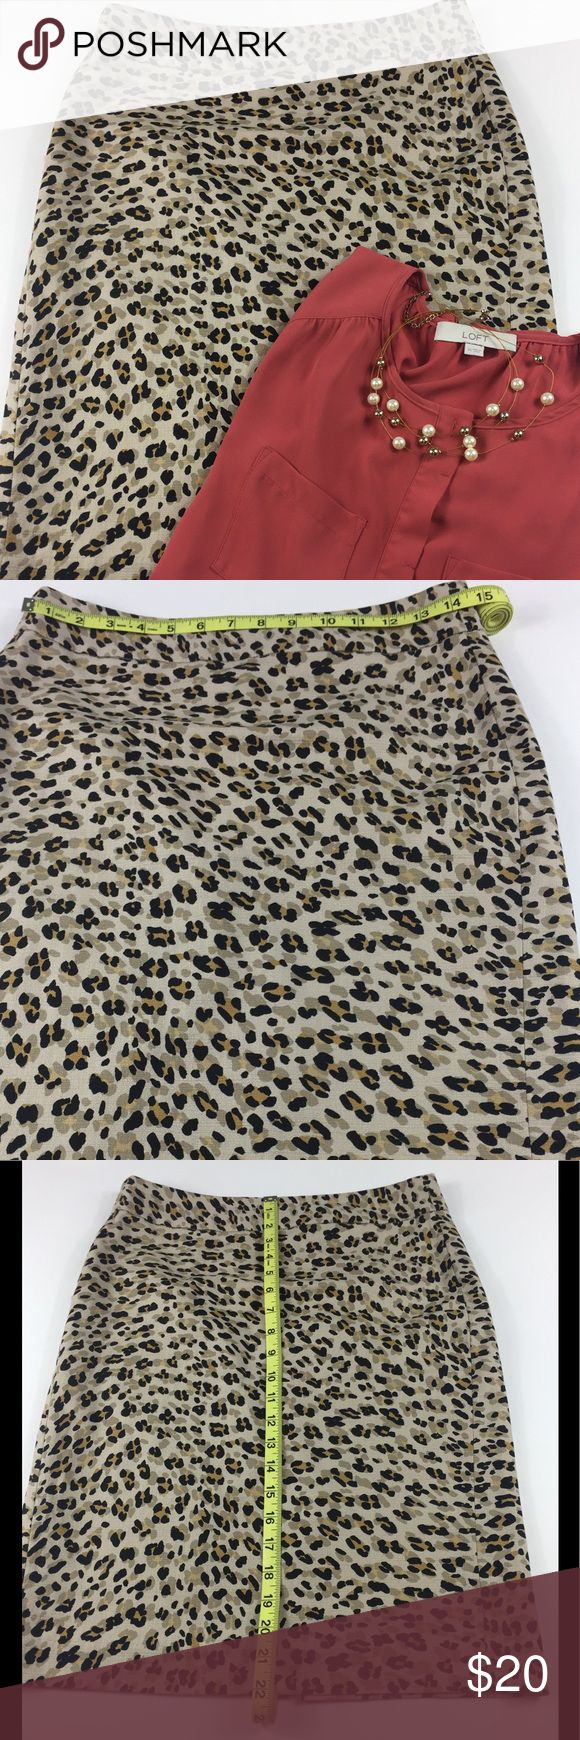 Banana Republic Straight Skirt l 2 This Banana Republic straight style leopard print skirt is lined and  made of 98% cotton and 2% spandex. It has two minor imperfections that are barely noticeable, see last two photos. Banana Republic Skirts